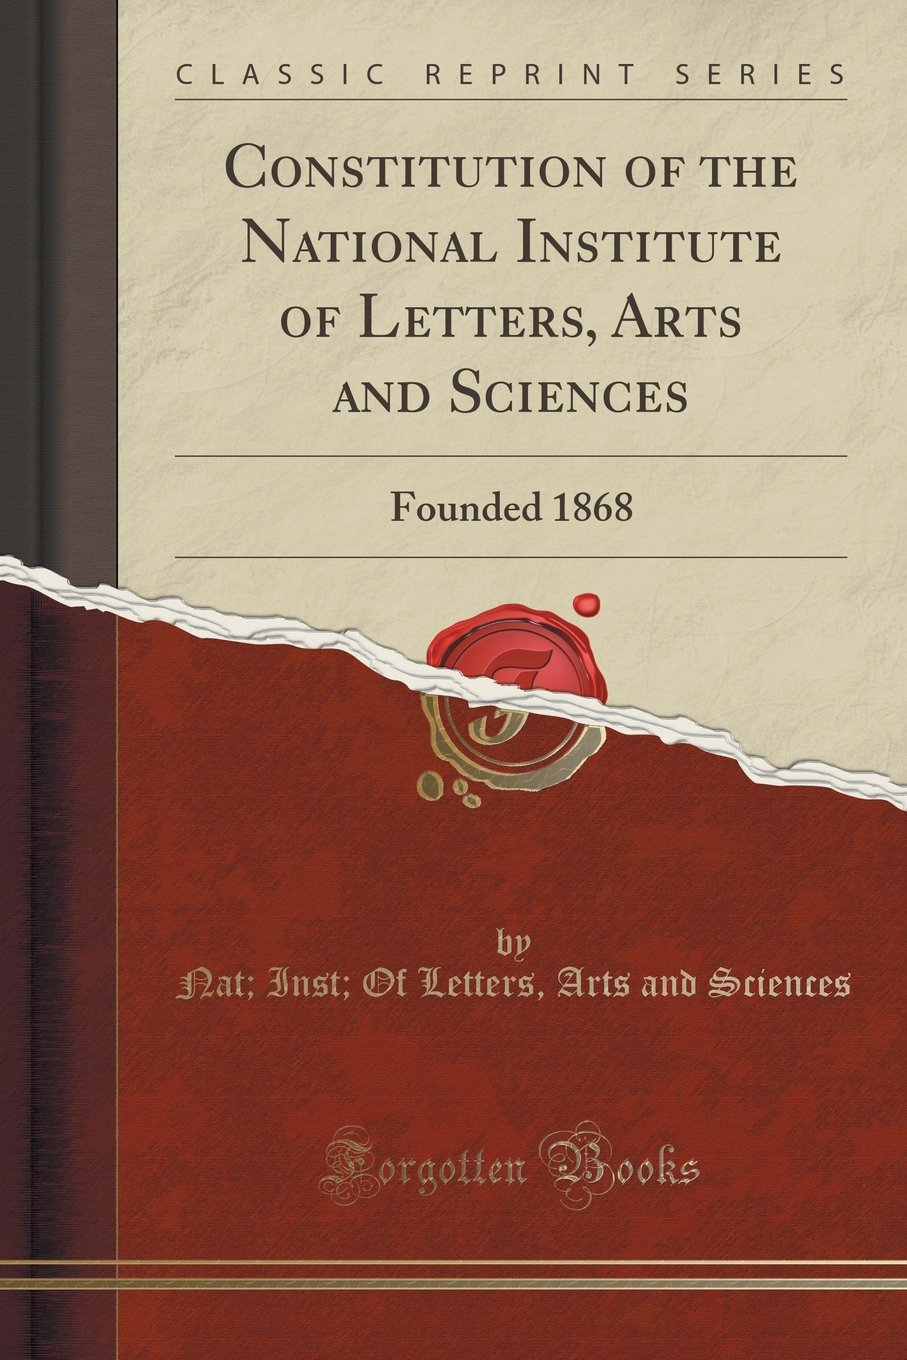 Constitution of the National Institute of Letters, Arts and Sciences: Founded 1868 (Classic Reprint) PDF